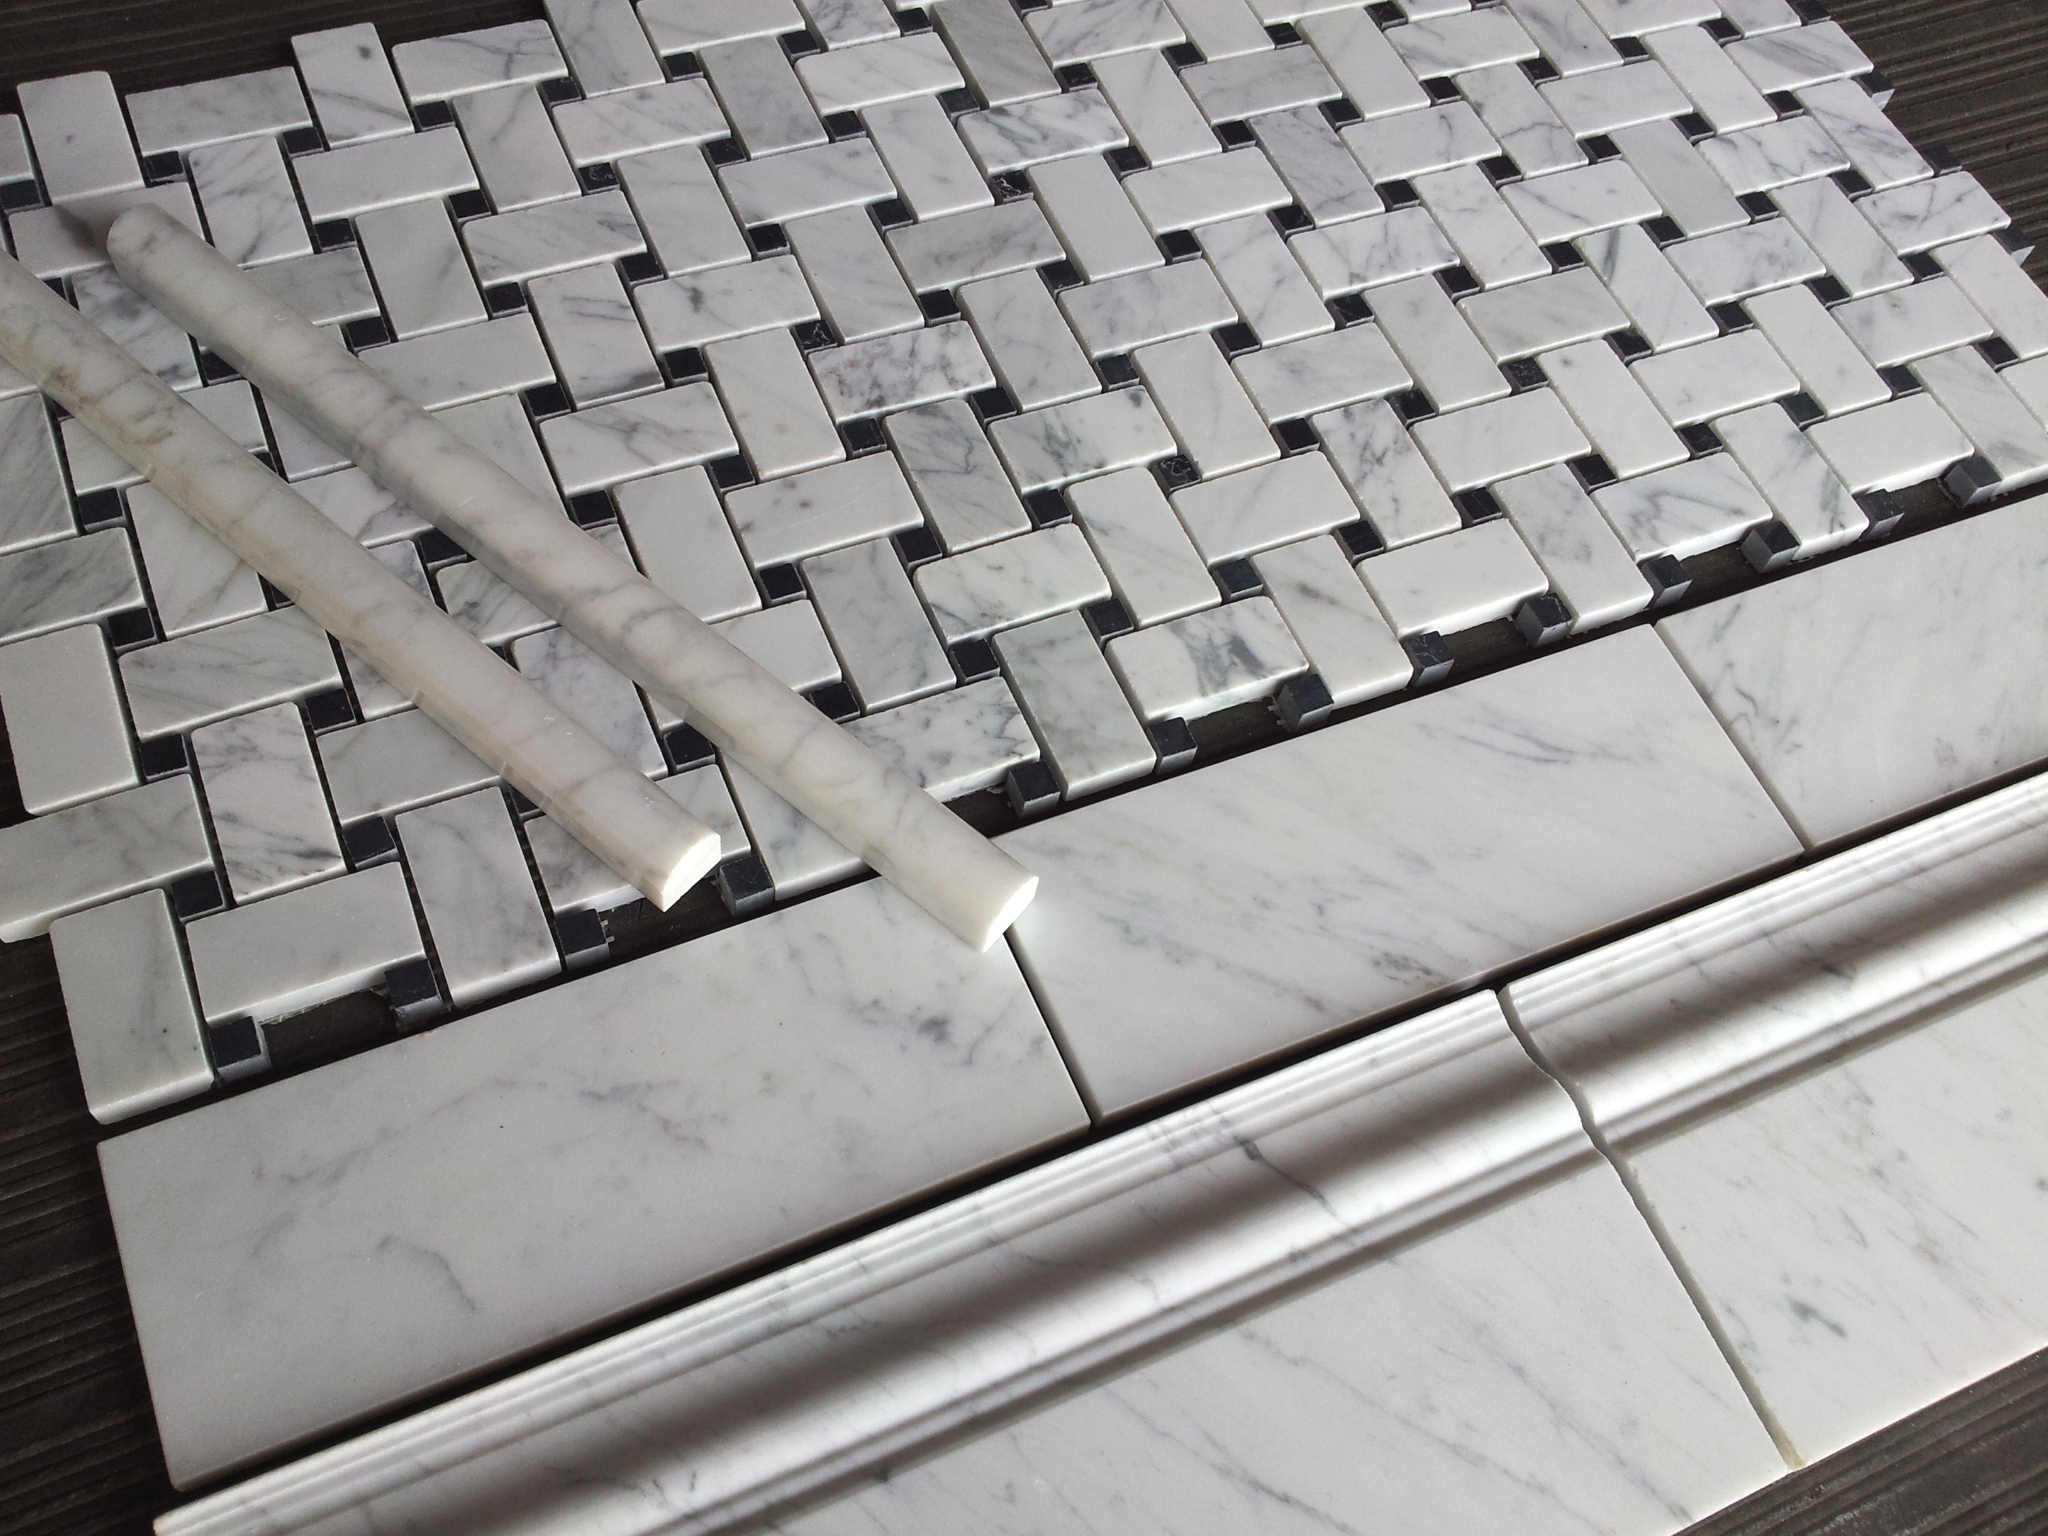 the pictures show carrara bianco honed basketweave